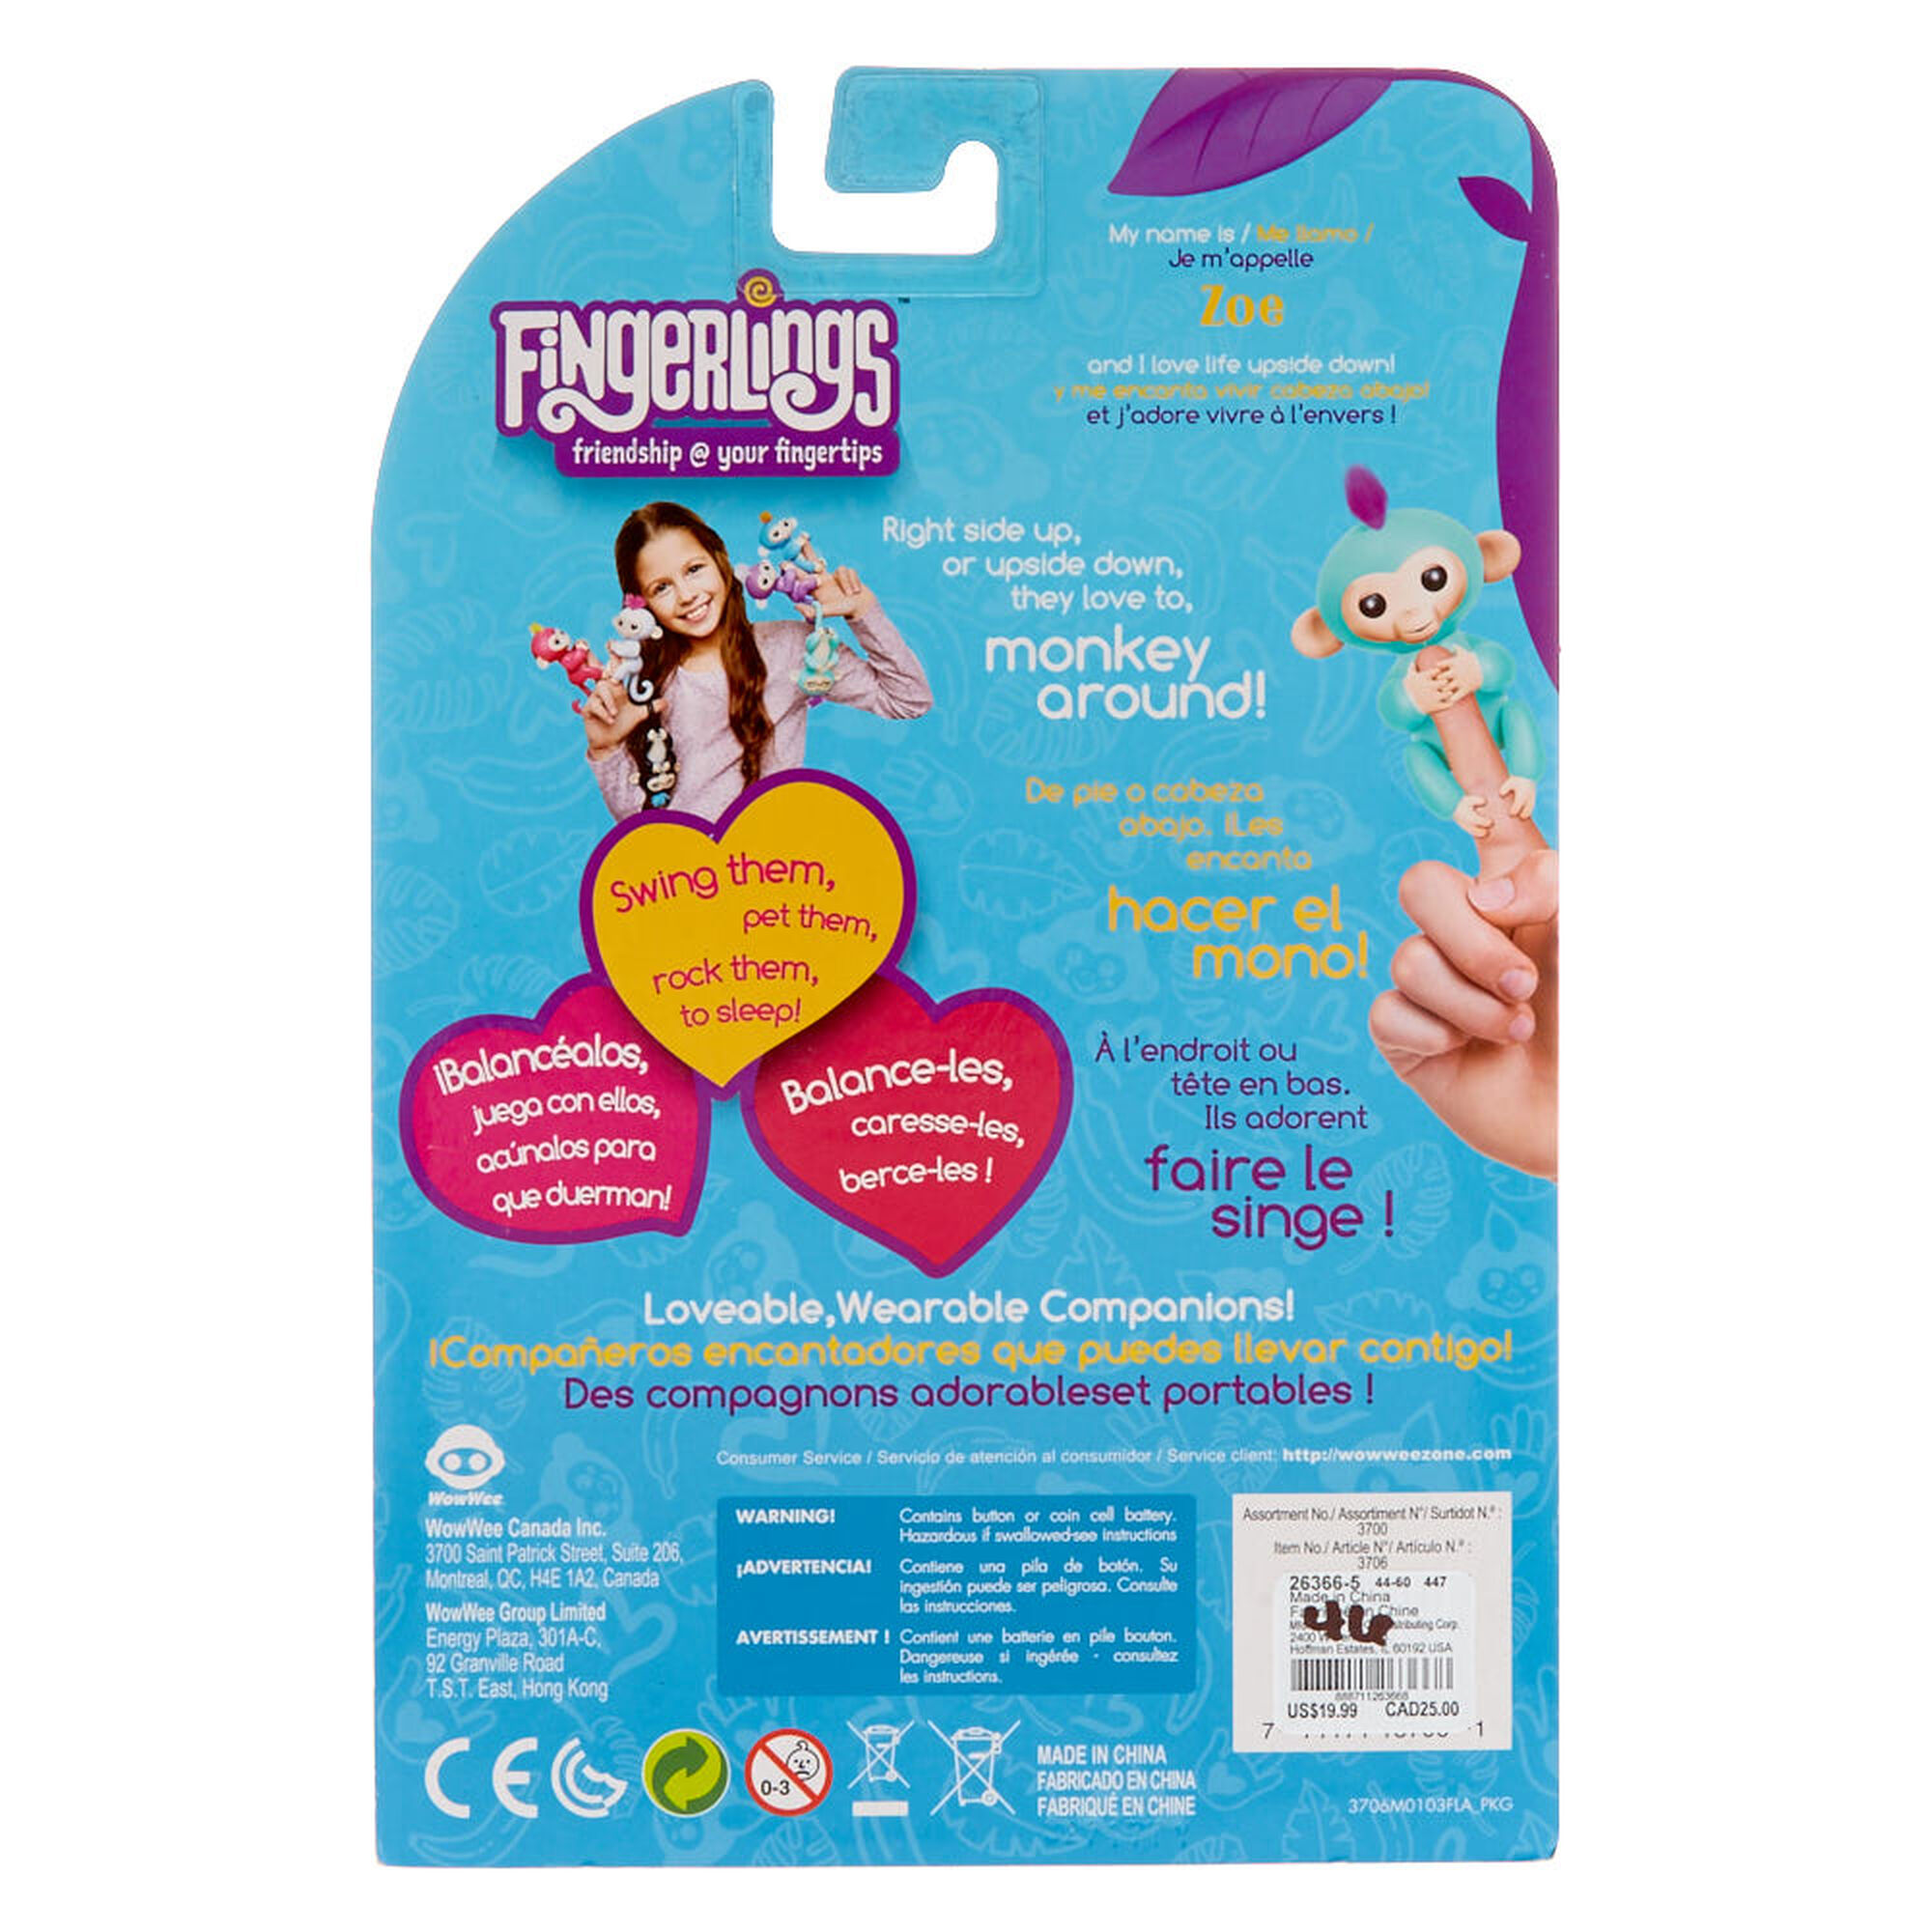 Wowwee Fingerlings Interactive Baby Monkey Toy Zoe Claires Us